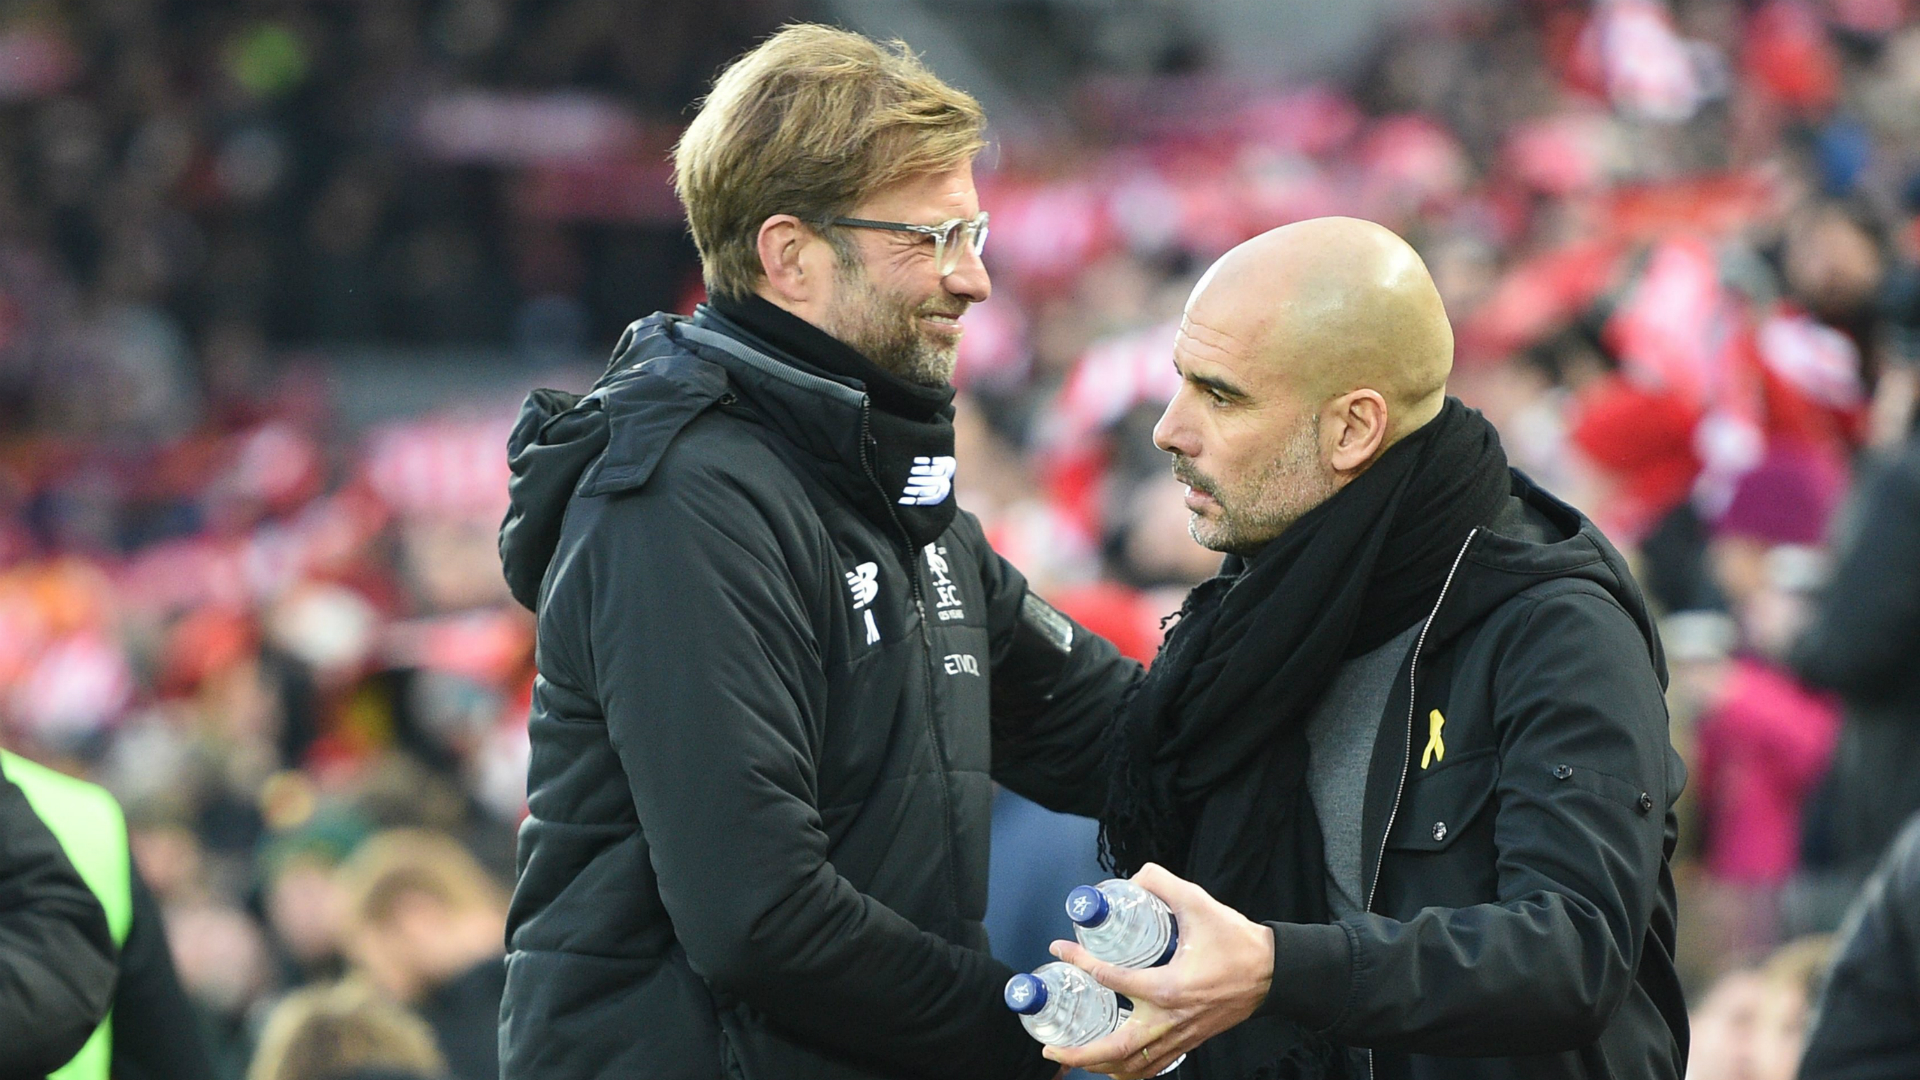 Liverpool vs. Manchester City: Partidazo en Anfield por la Premier League